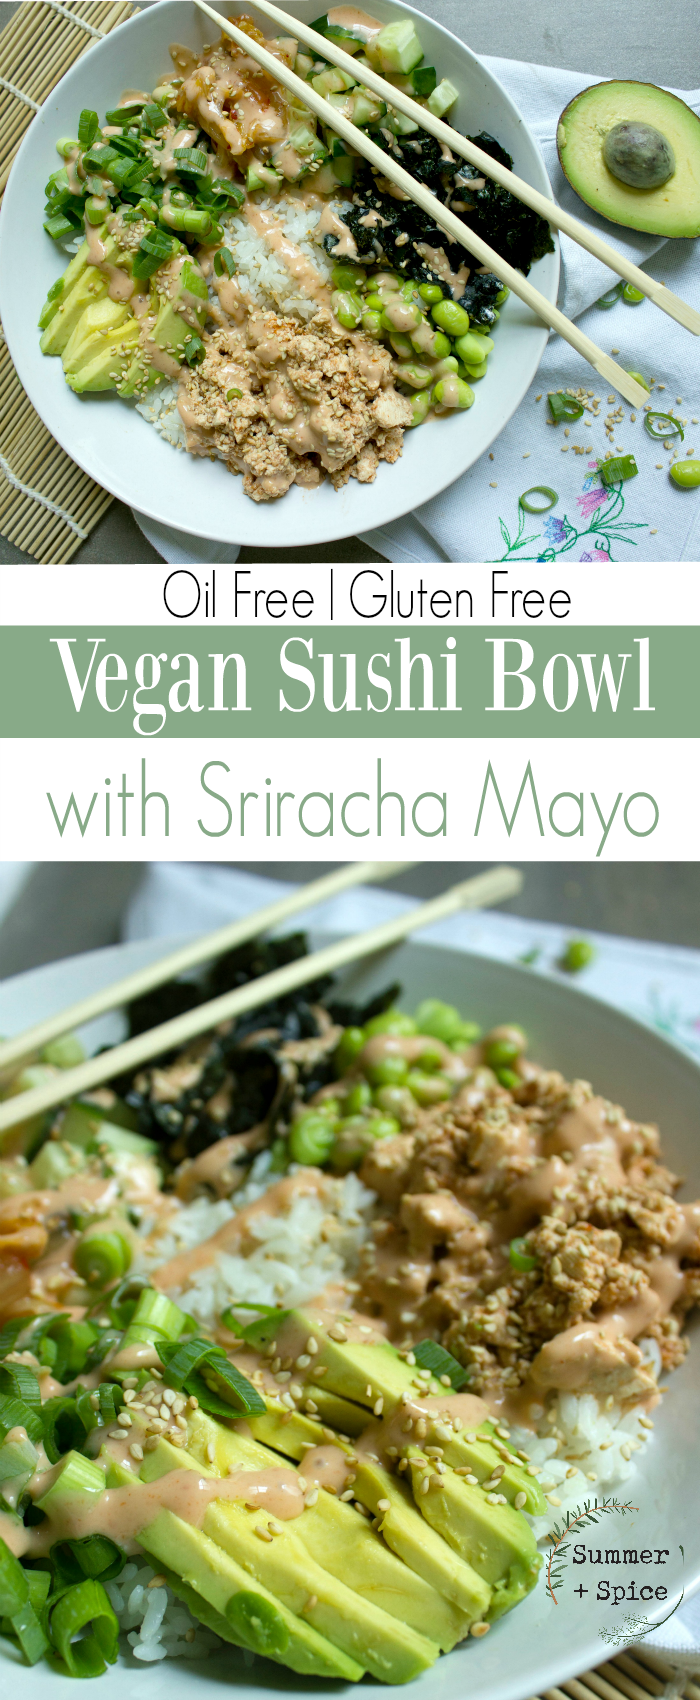 Vegan Sushi Bowl With Oil Free Sriracha Mayo